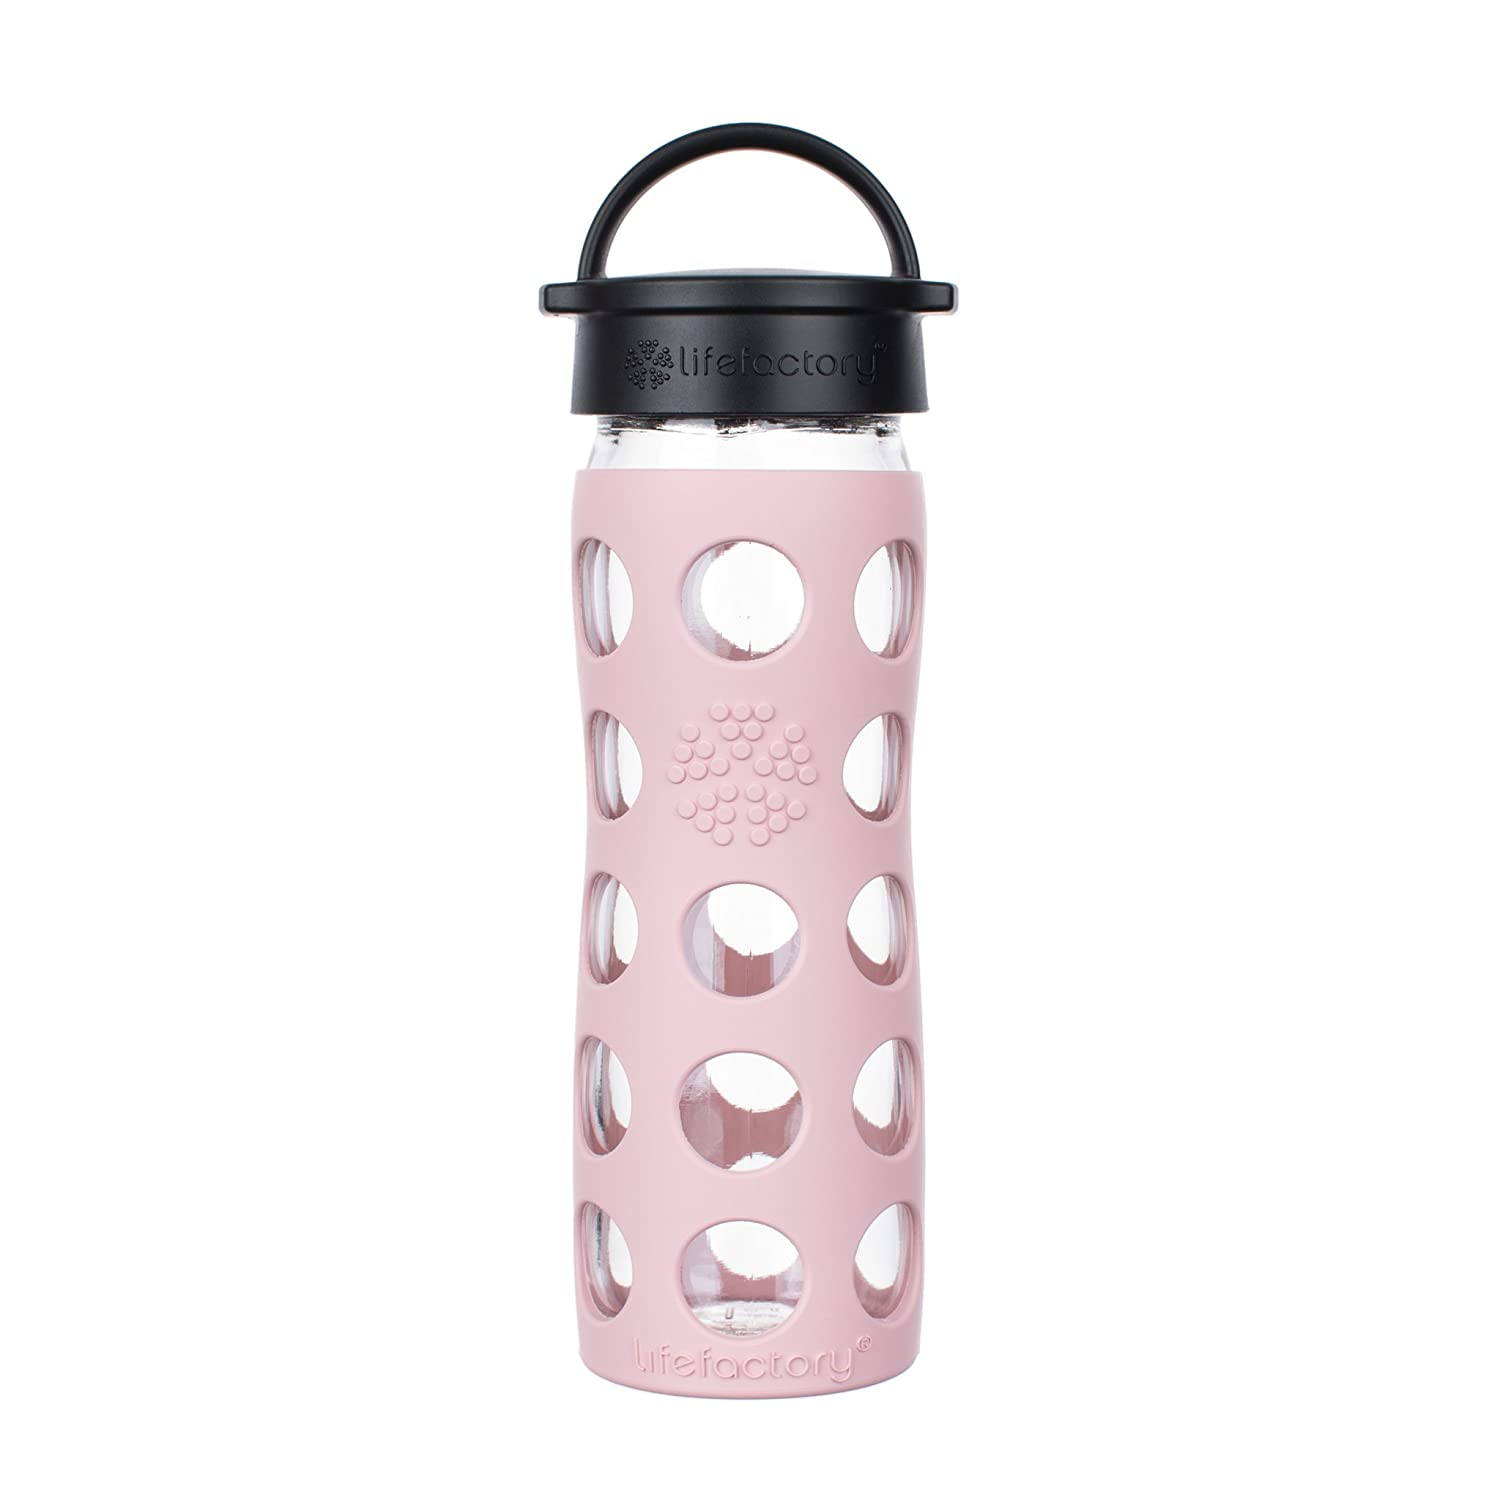 Desert Rose LF230208C4 Lifefactory 22-Ounce BPA-Free Glass Water Bottle with Classic Cap and Silicone Sleeve